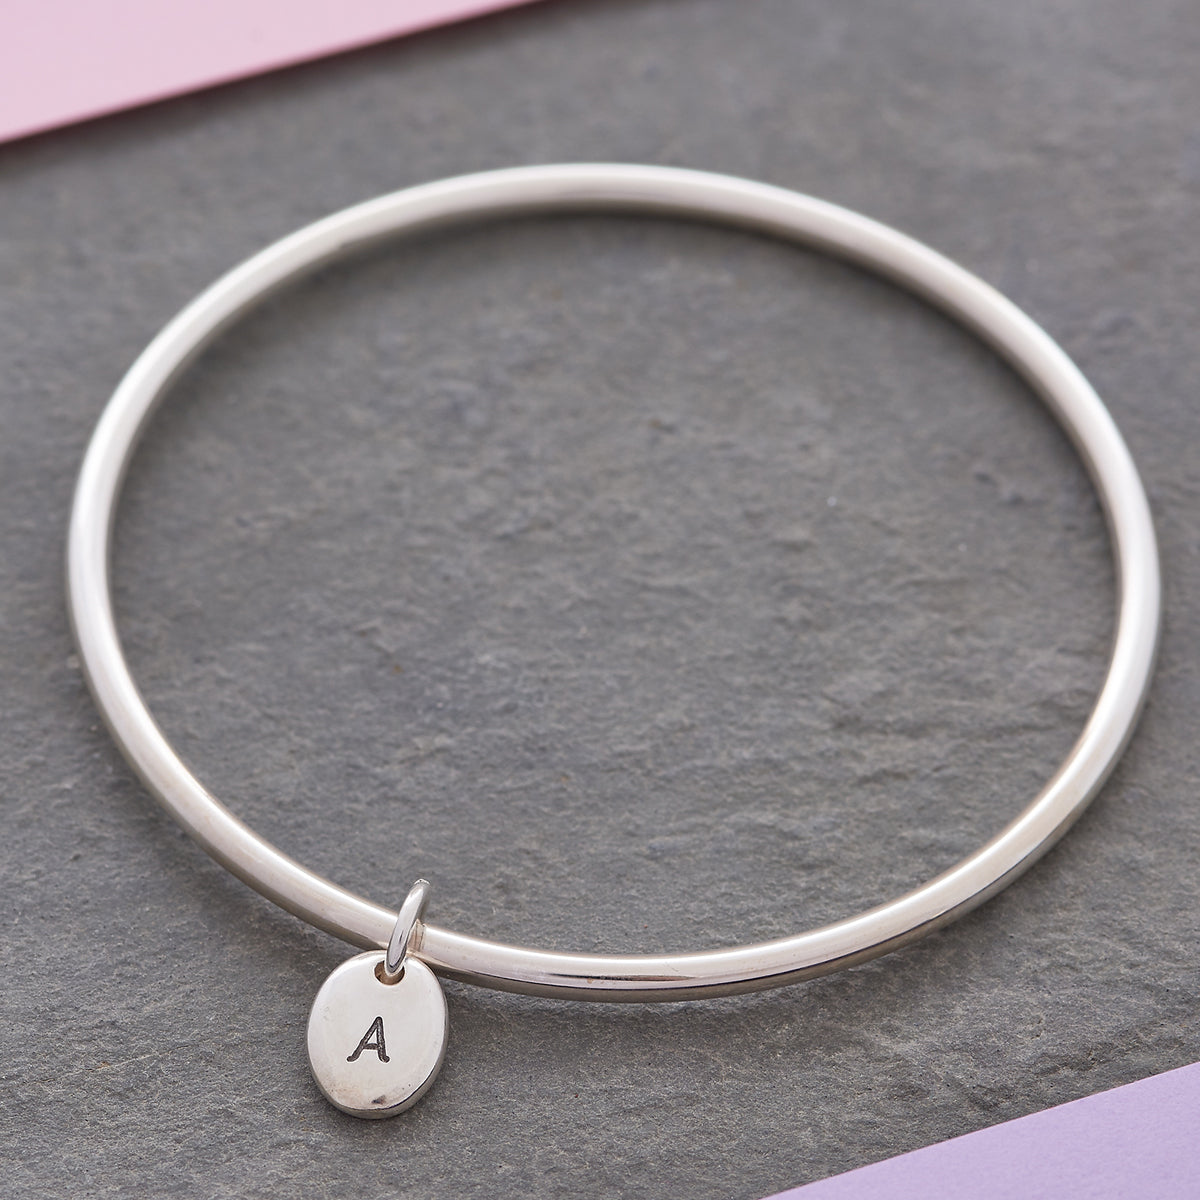 Personalised Pebble Silver Charm Bangle engraved with initial A